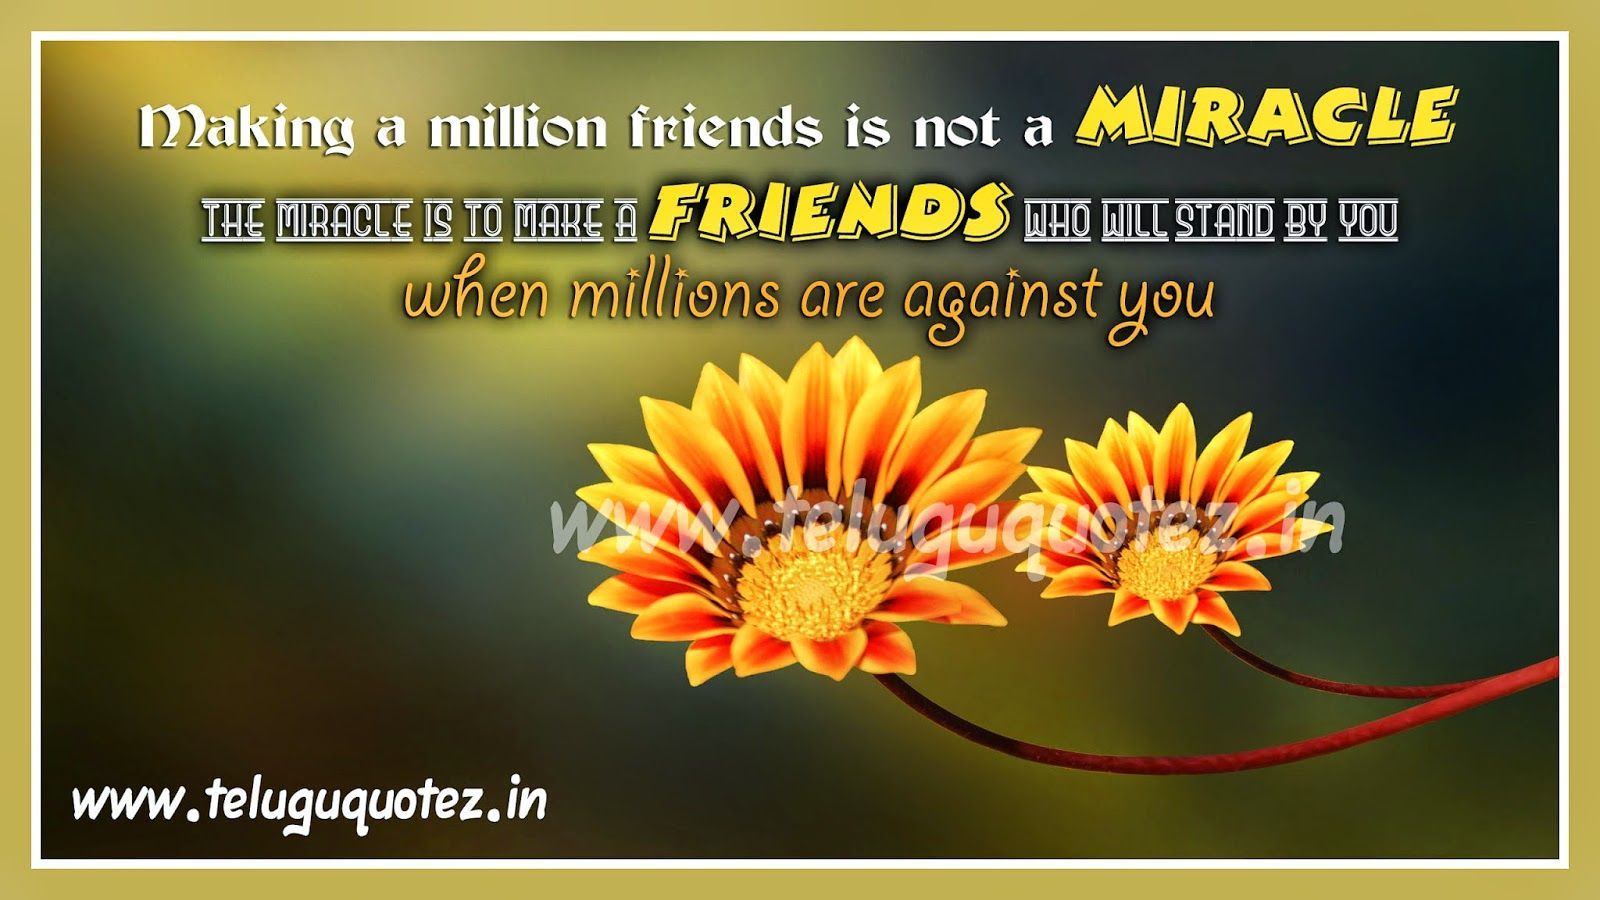 Inspirational Quotes About Friendship Teluguquotez.in Inspirational Friendship Quotes Hd Wallpapers